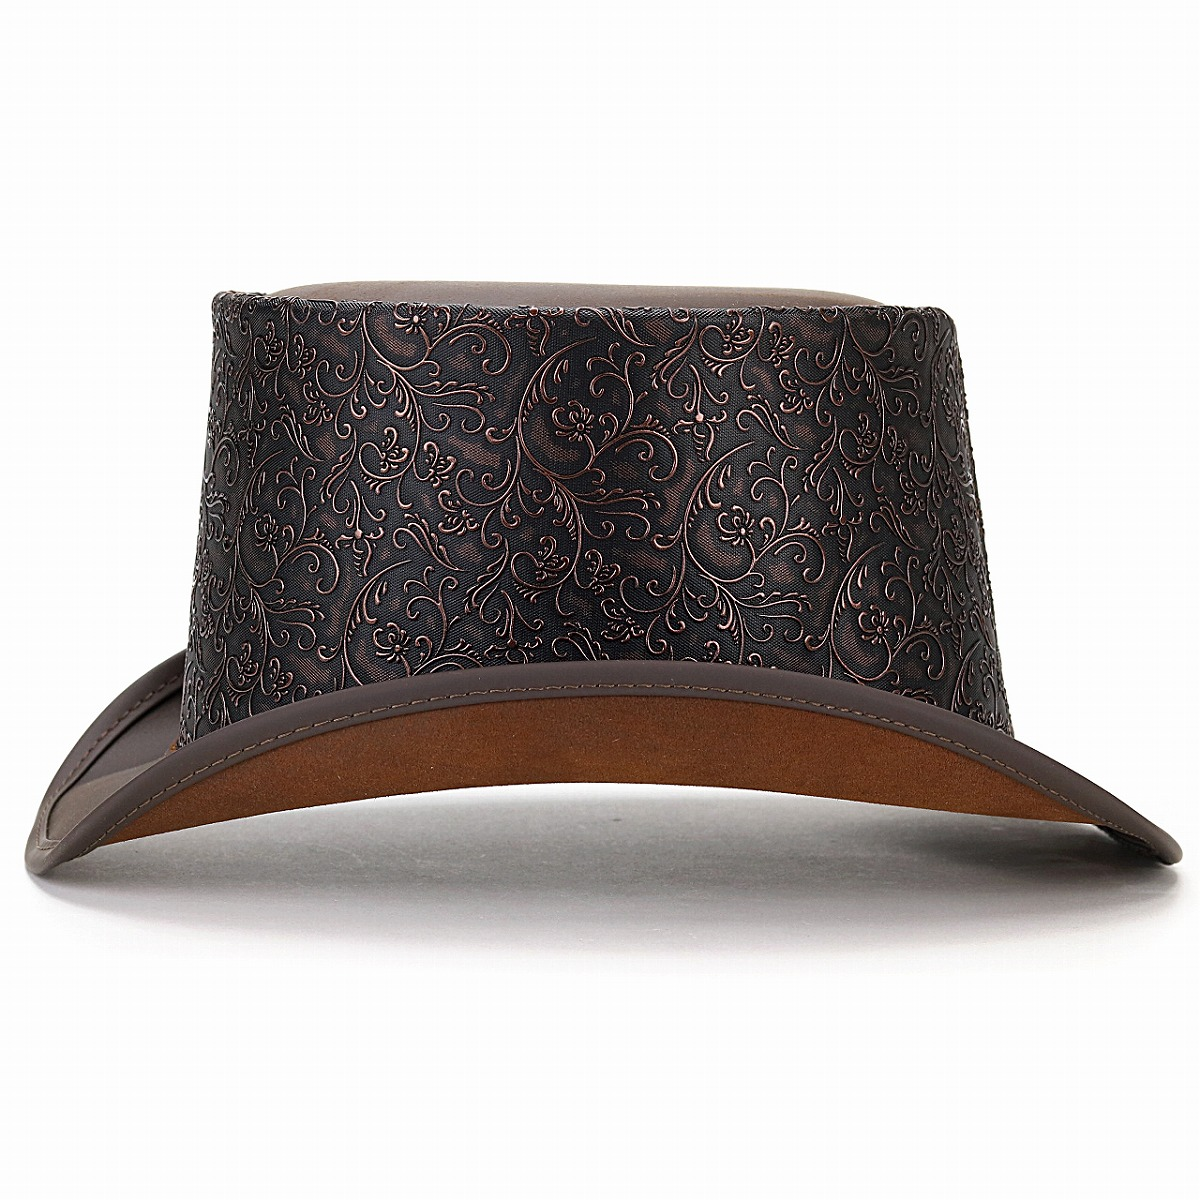 Christmas Top Hat.Hat Tea Brown Top Hat Man Hat Present Christmas Gift In The Fall And Winter High Quality Head N Home Arabesque Pattern Hat Made In The Hat Leather